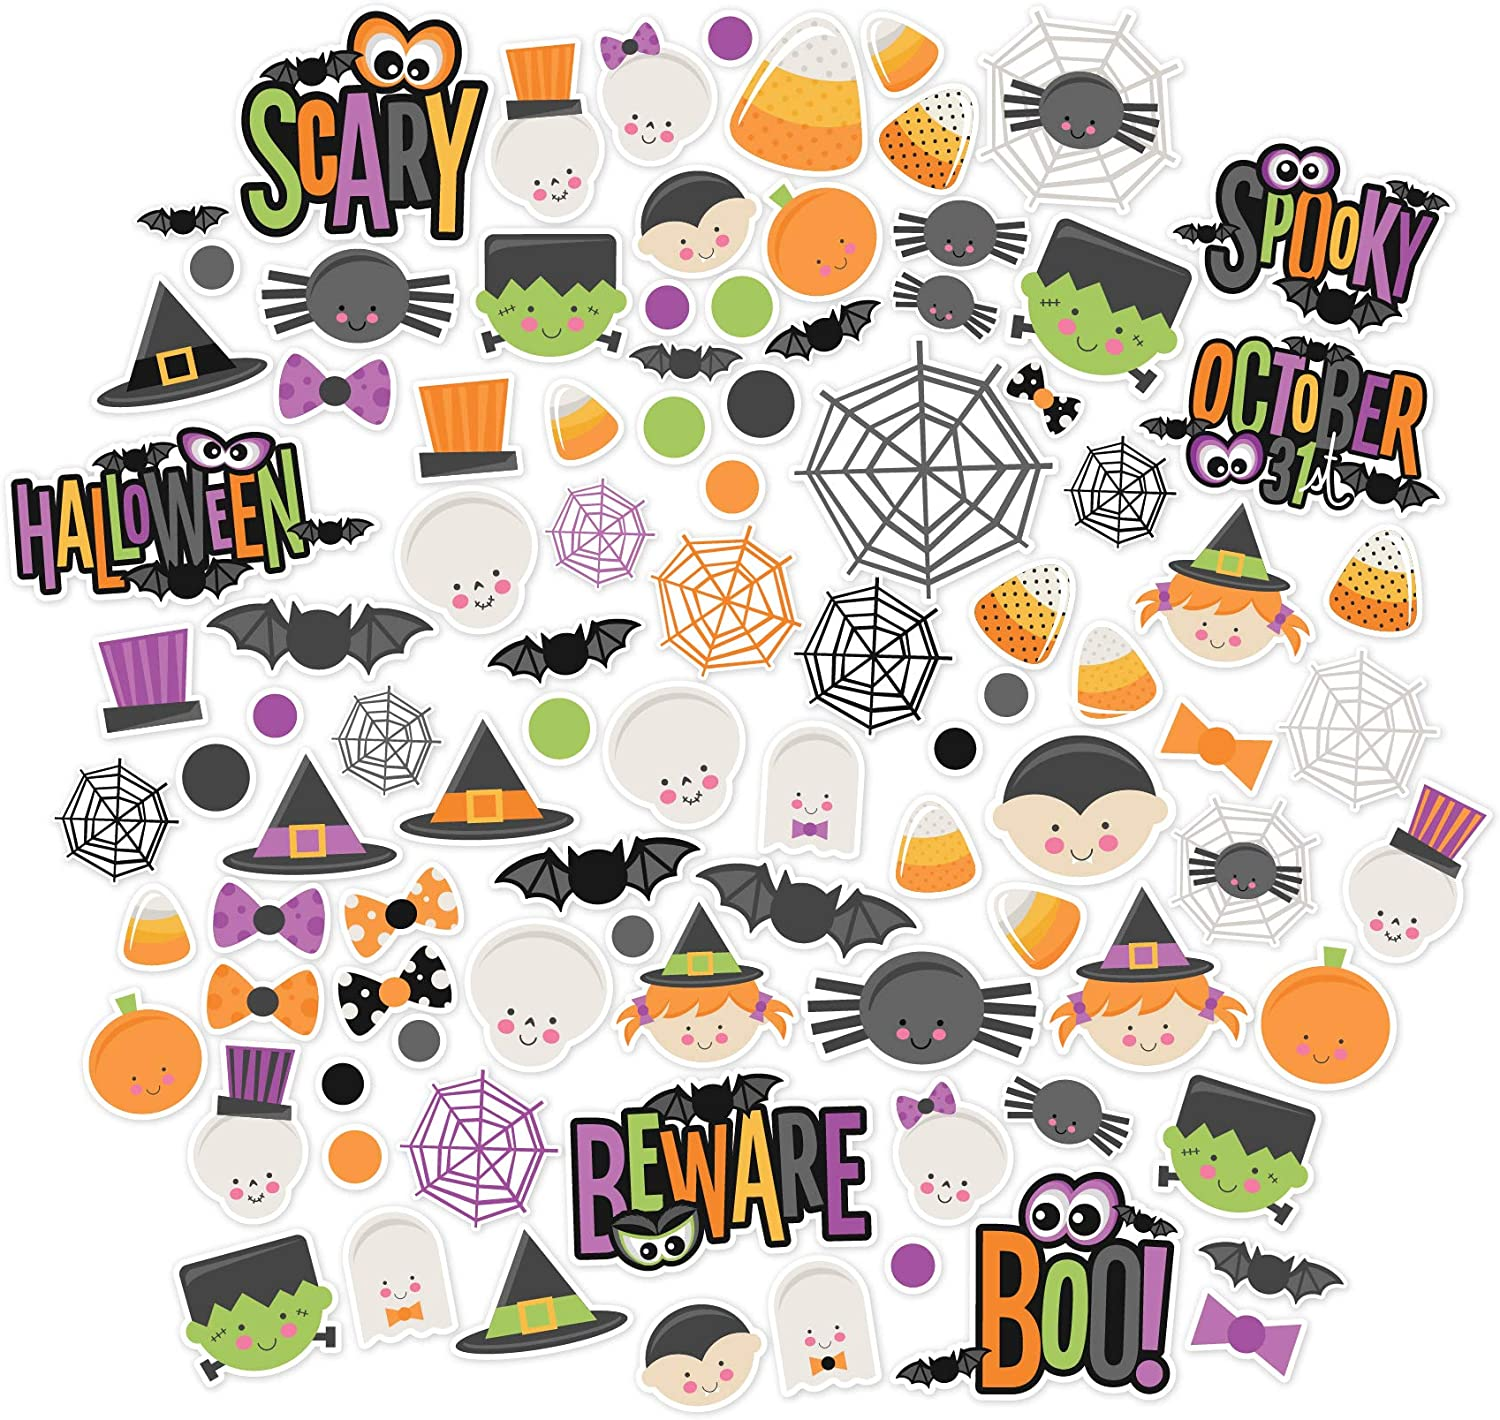 Halloween words die cuts for cards or scrapbook 26 pieces